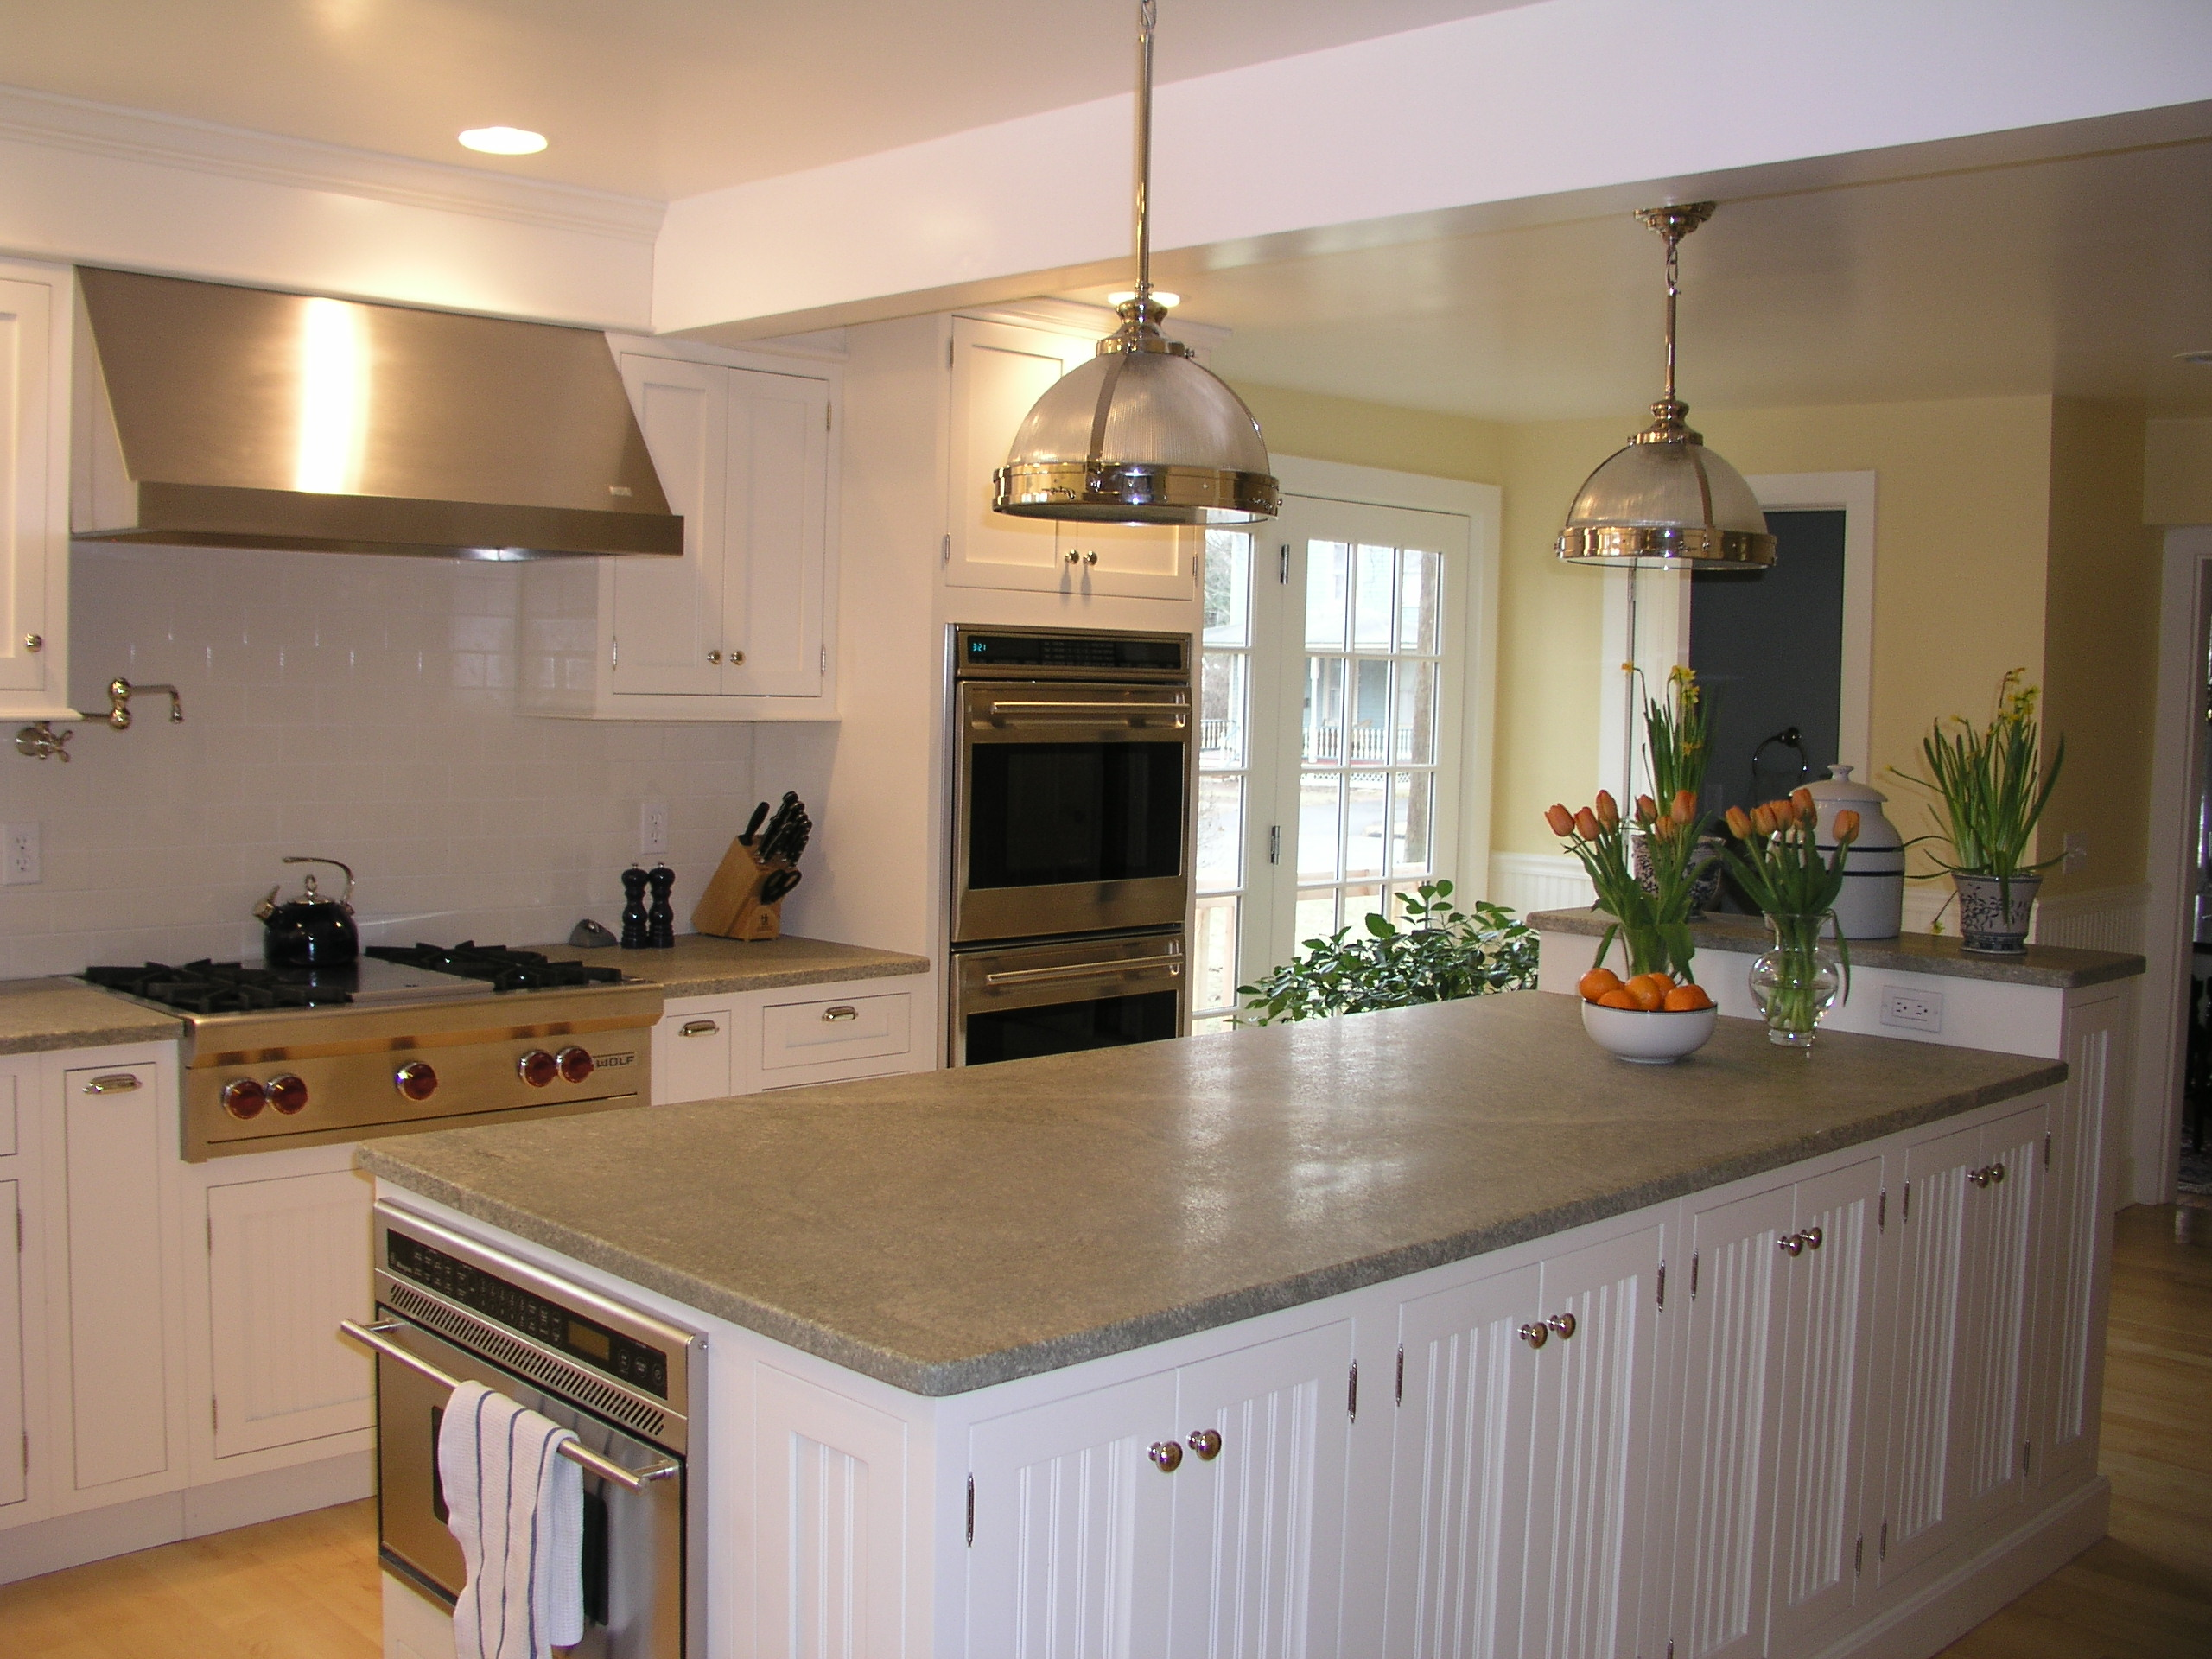 Beadboard look in milford ct kitchen design center for Kitchen design center